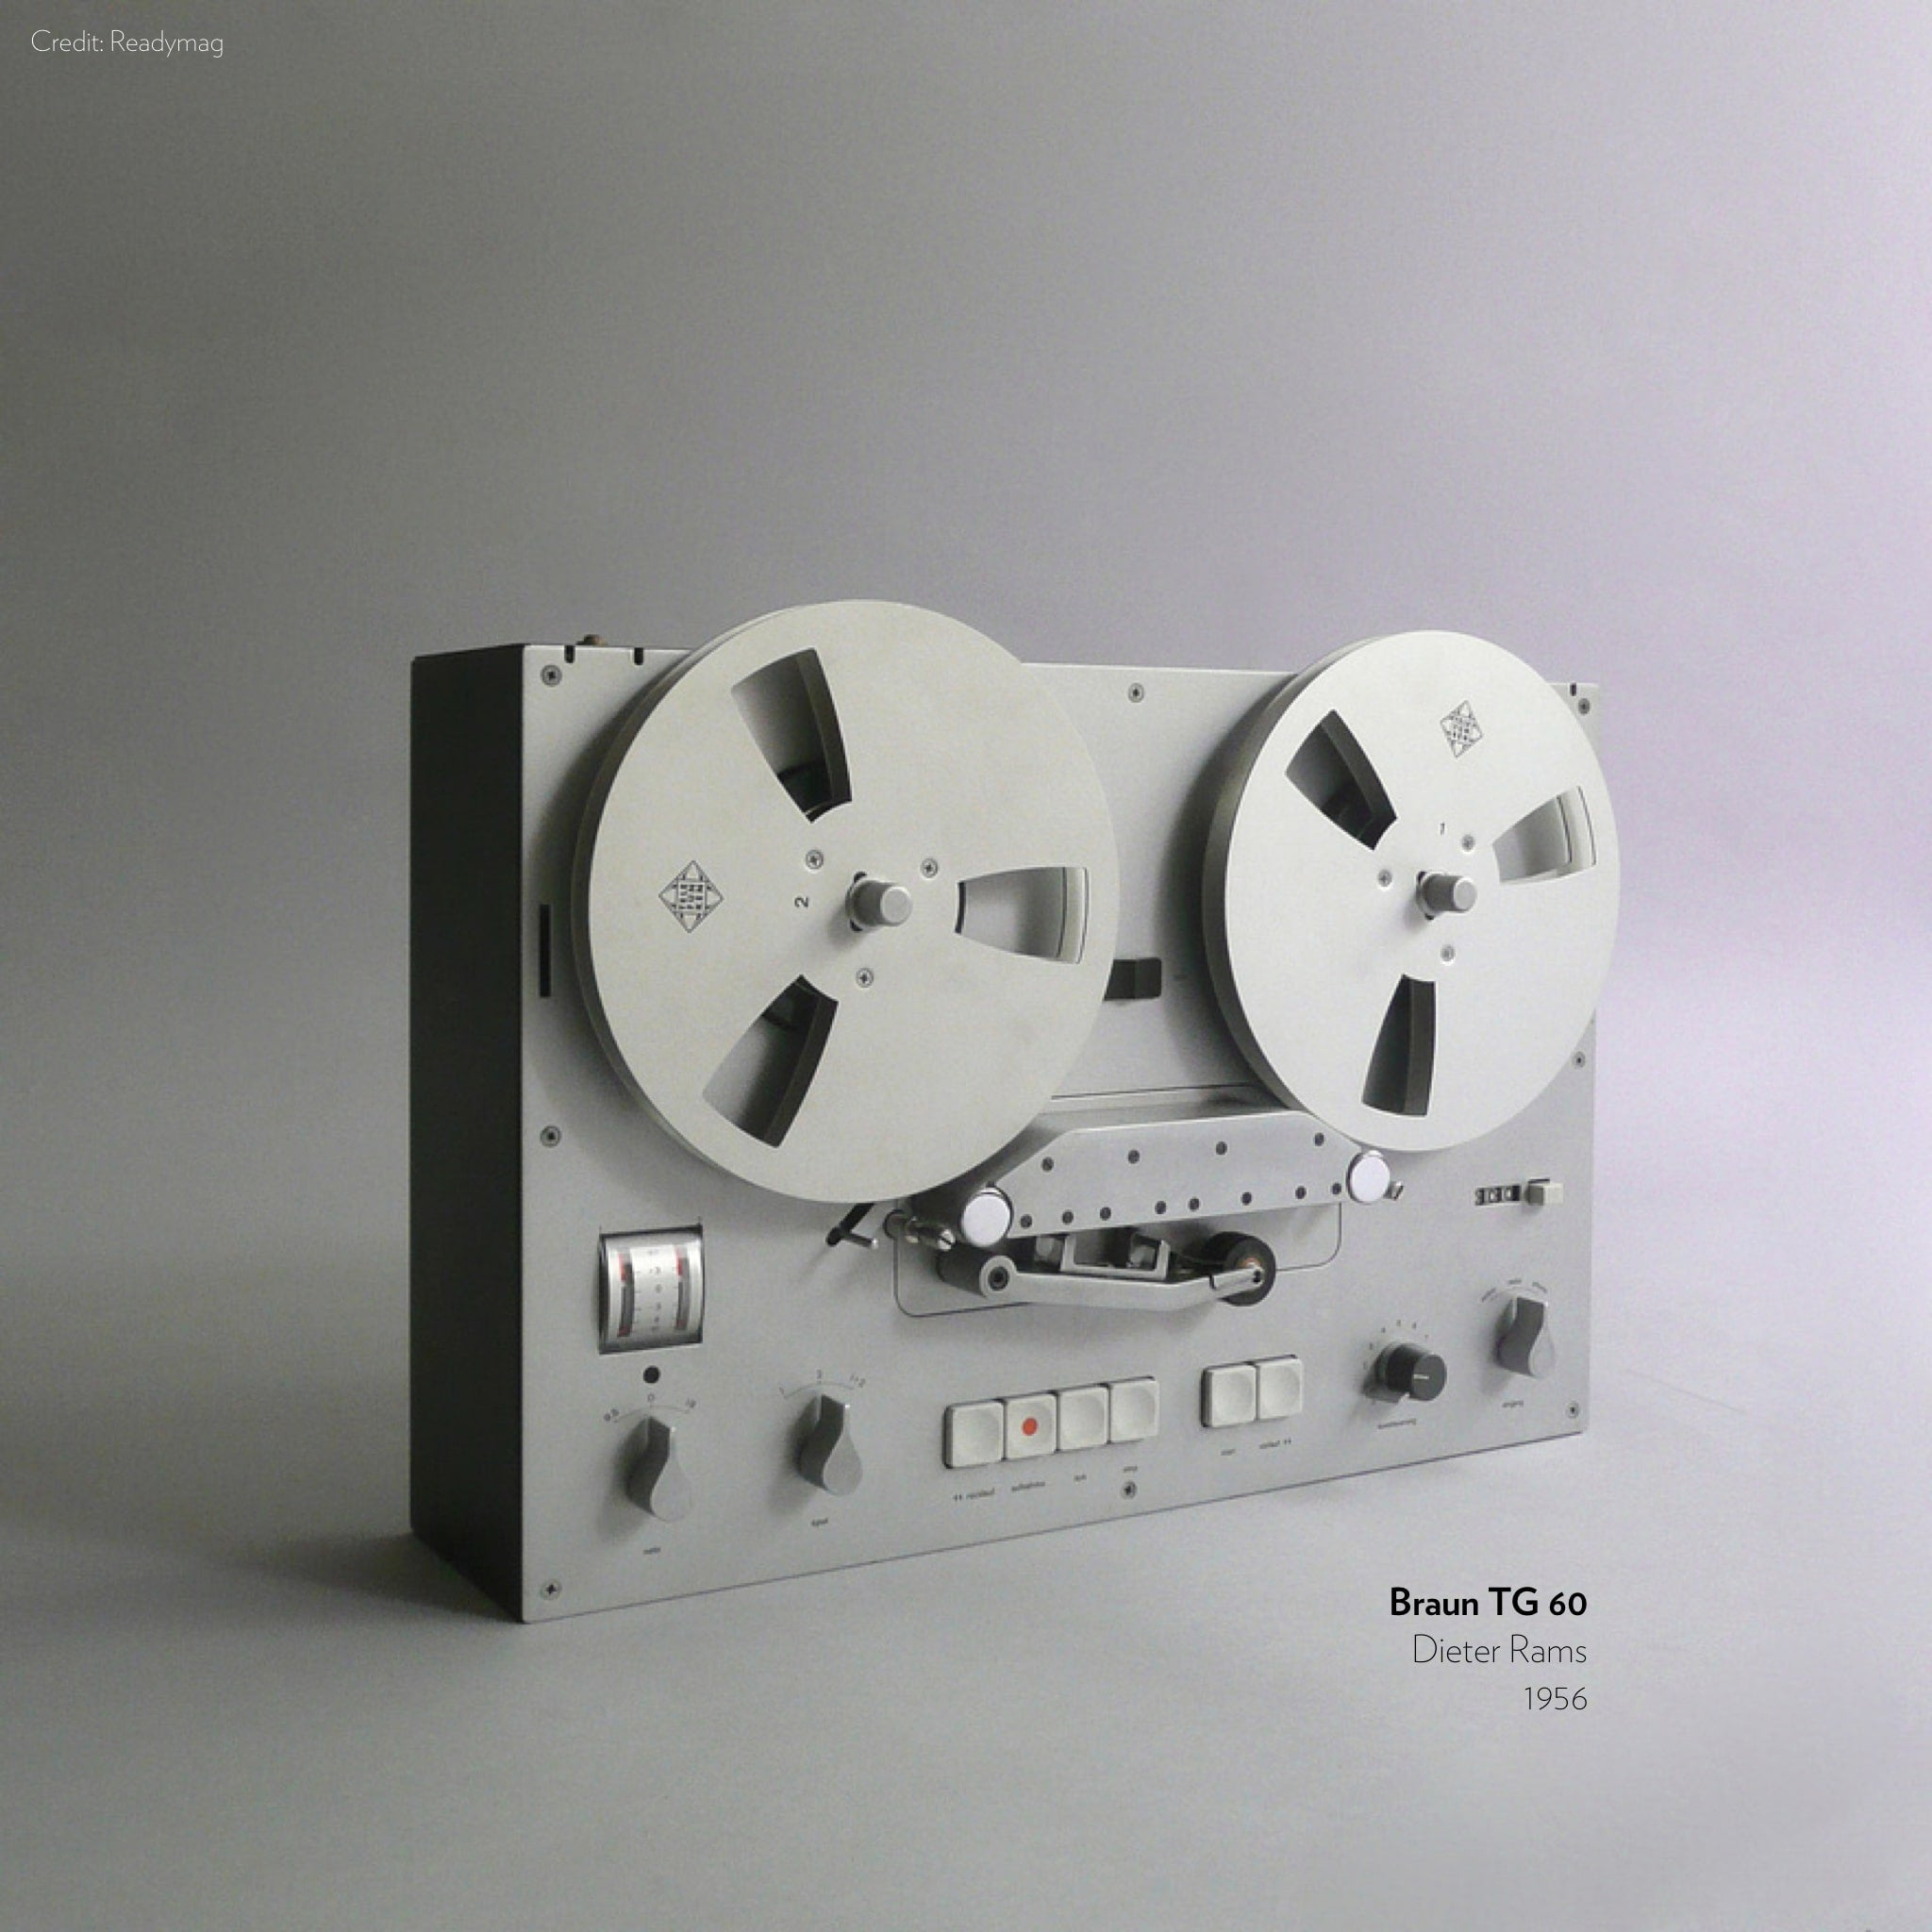 Braun TG 60 designed by dieter Rams in 1956, inspiration for Apple podcast app.